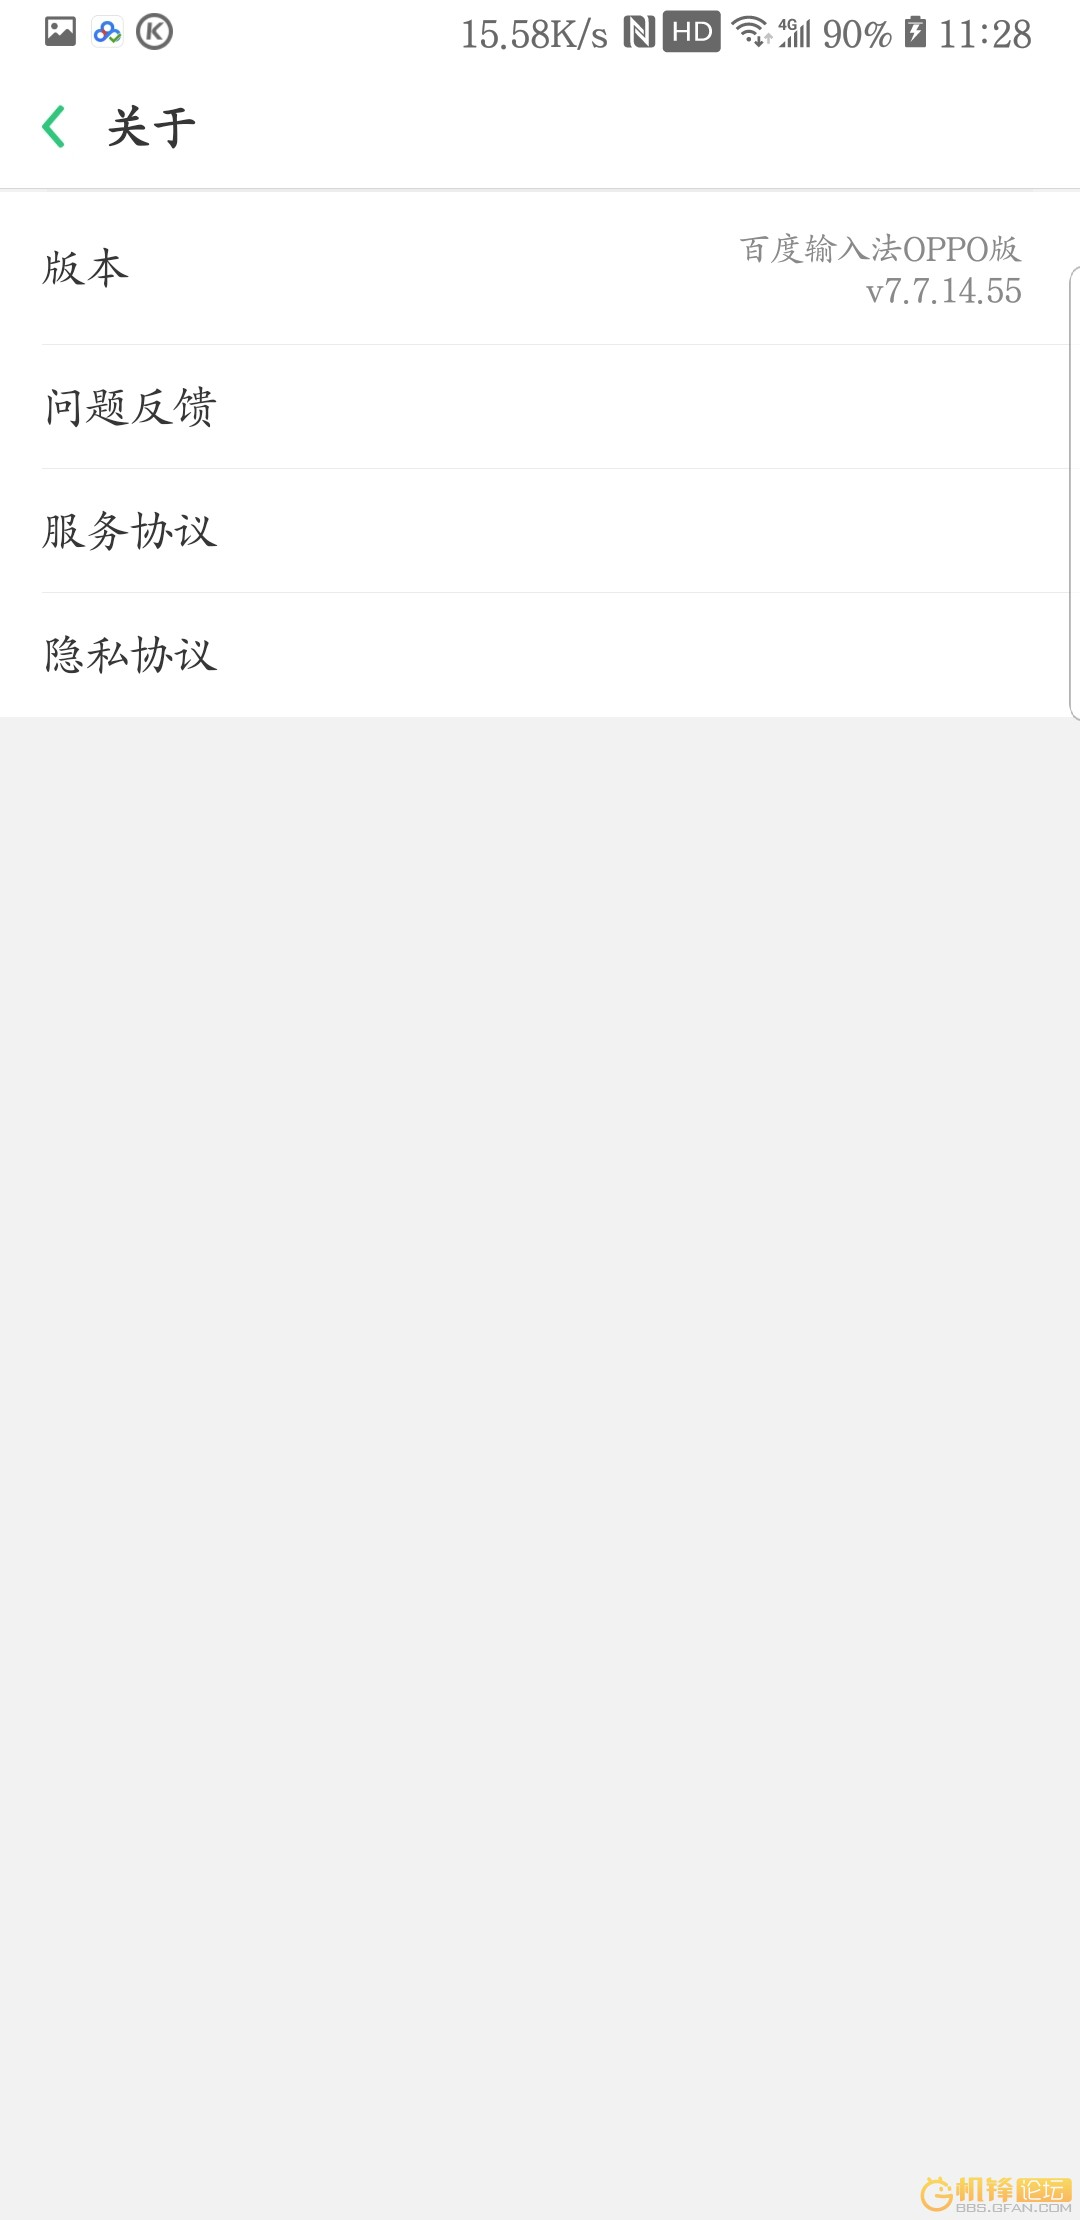 Screenshot_20180711-112833_Baidu IME for OPPO.jpg